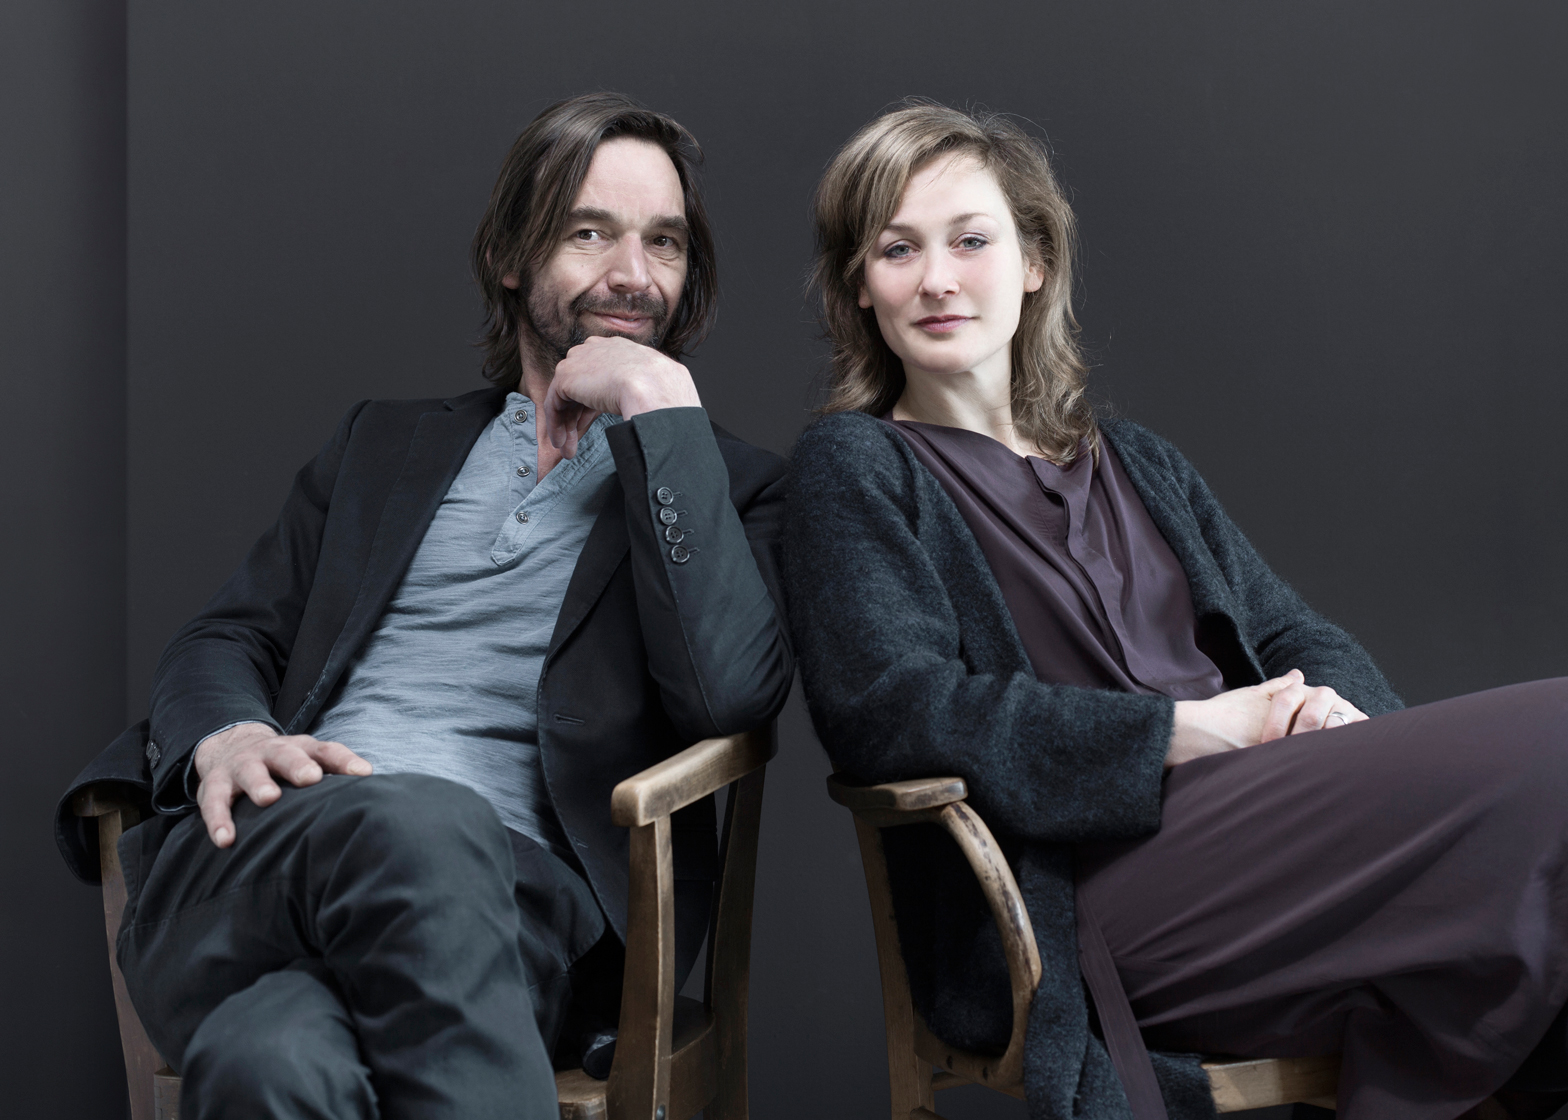 Portrait of Miriam van der Lubbe and Niels van Eijk by Lisa Klappe